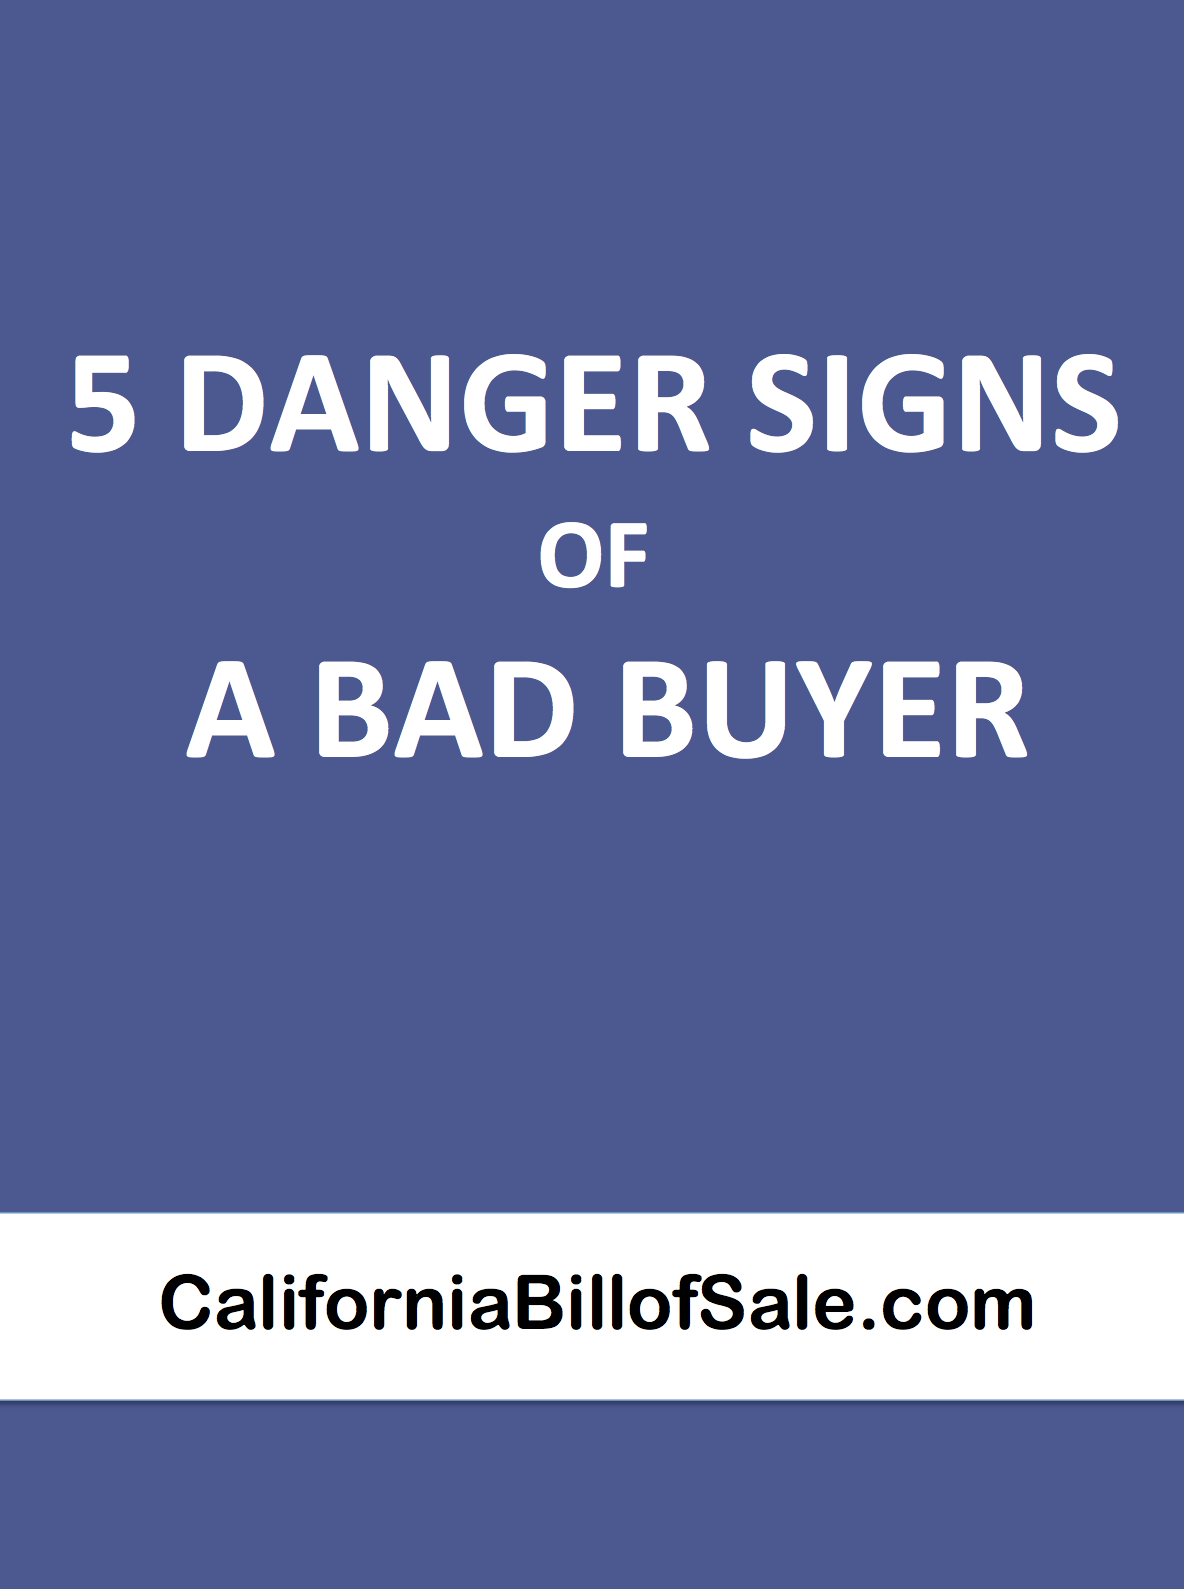 California Bill of Sale Danger Signs of a Bad Buyer